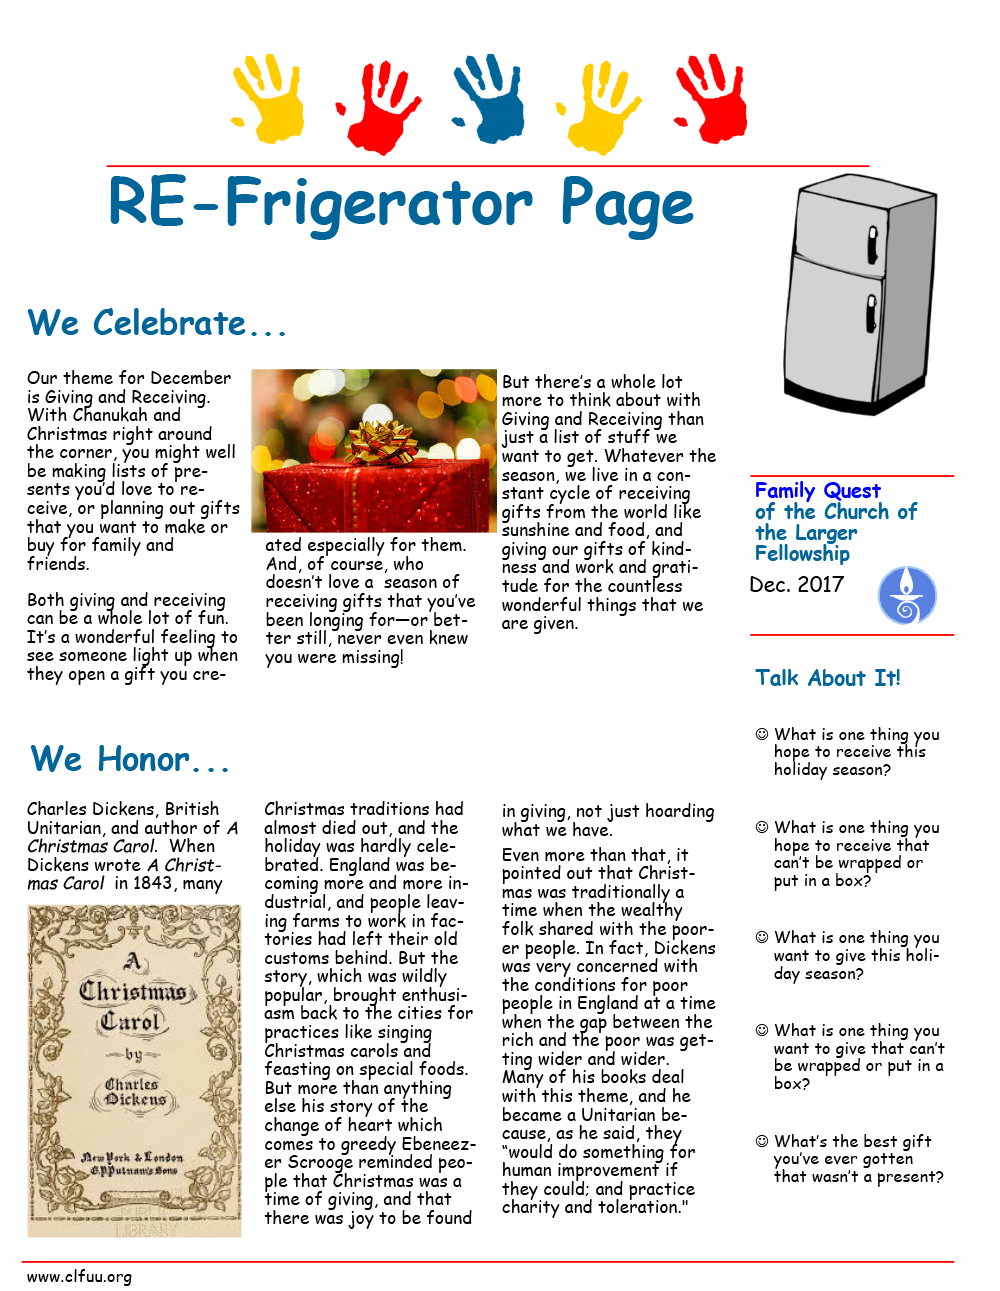 REFrigerator_Page_12-17-1.png